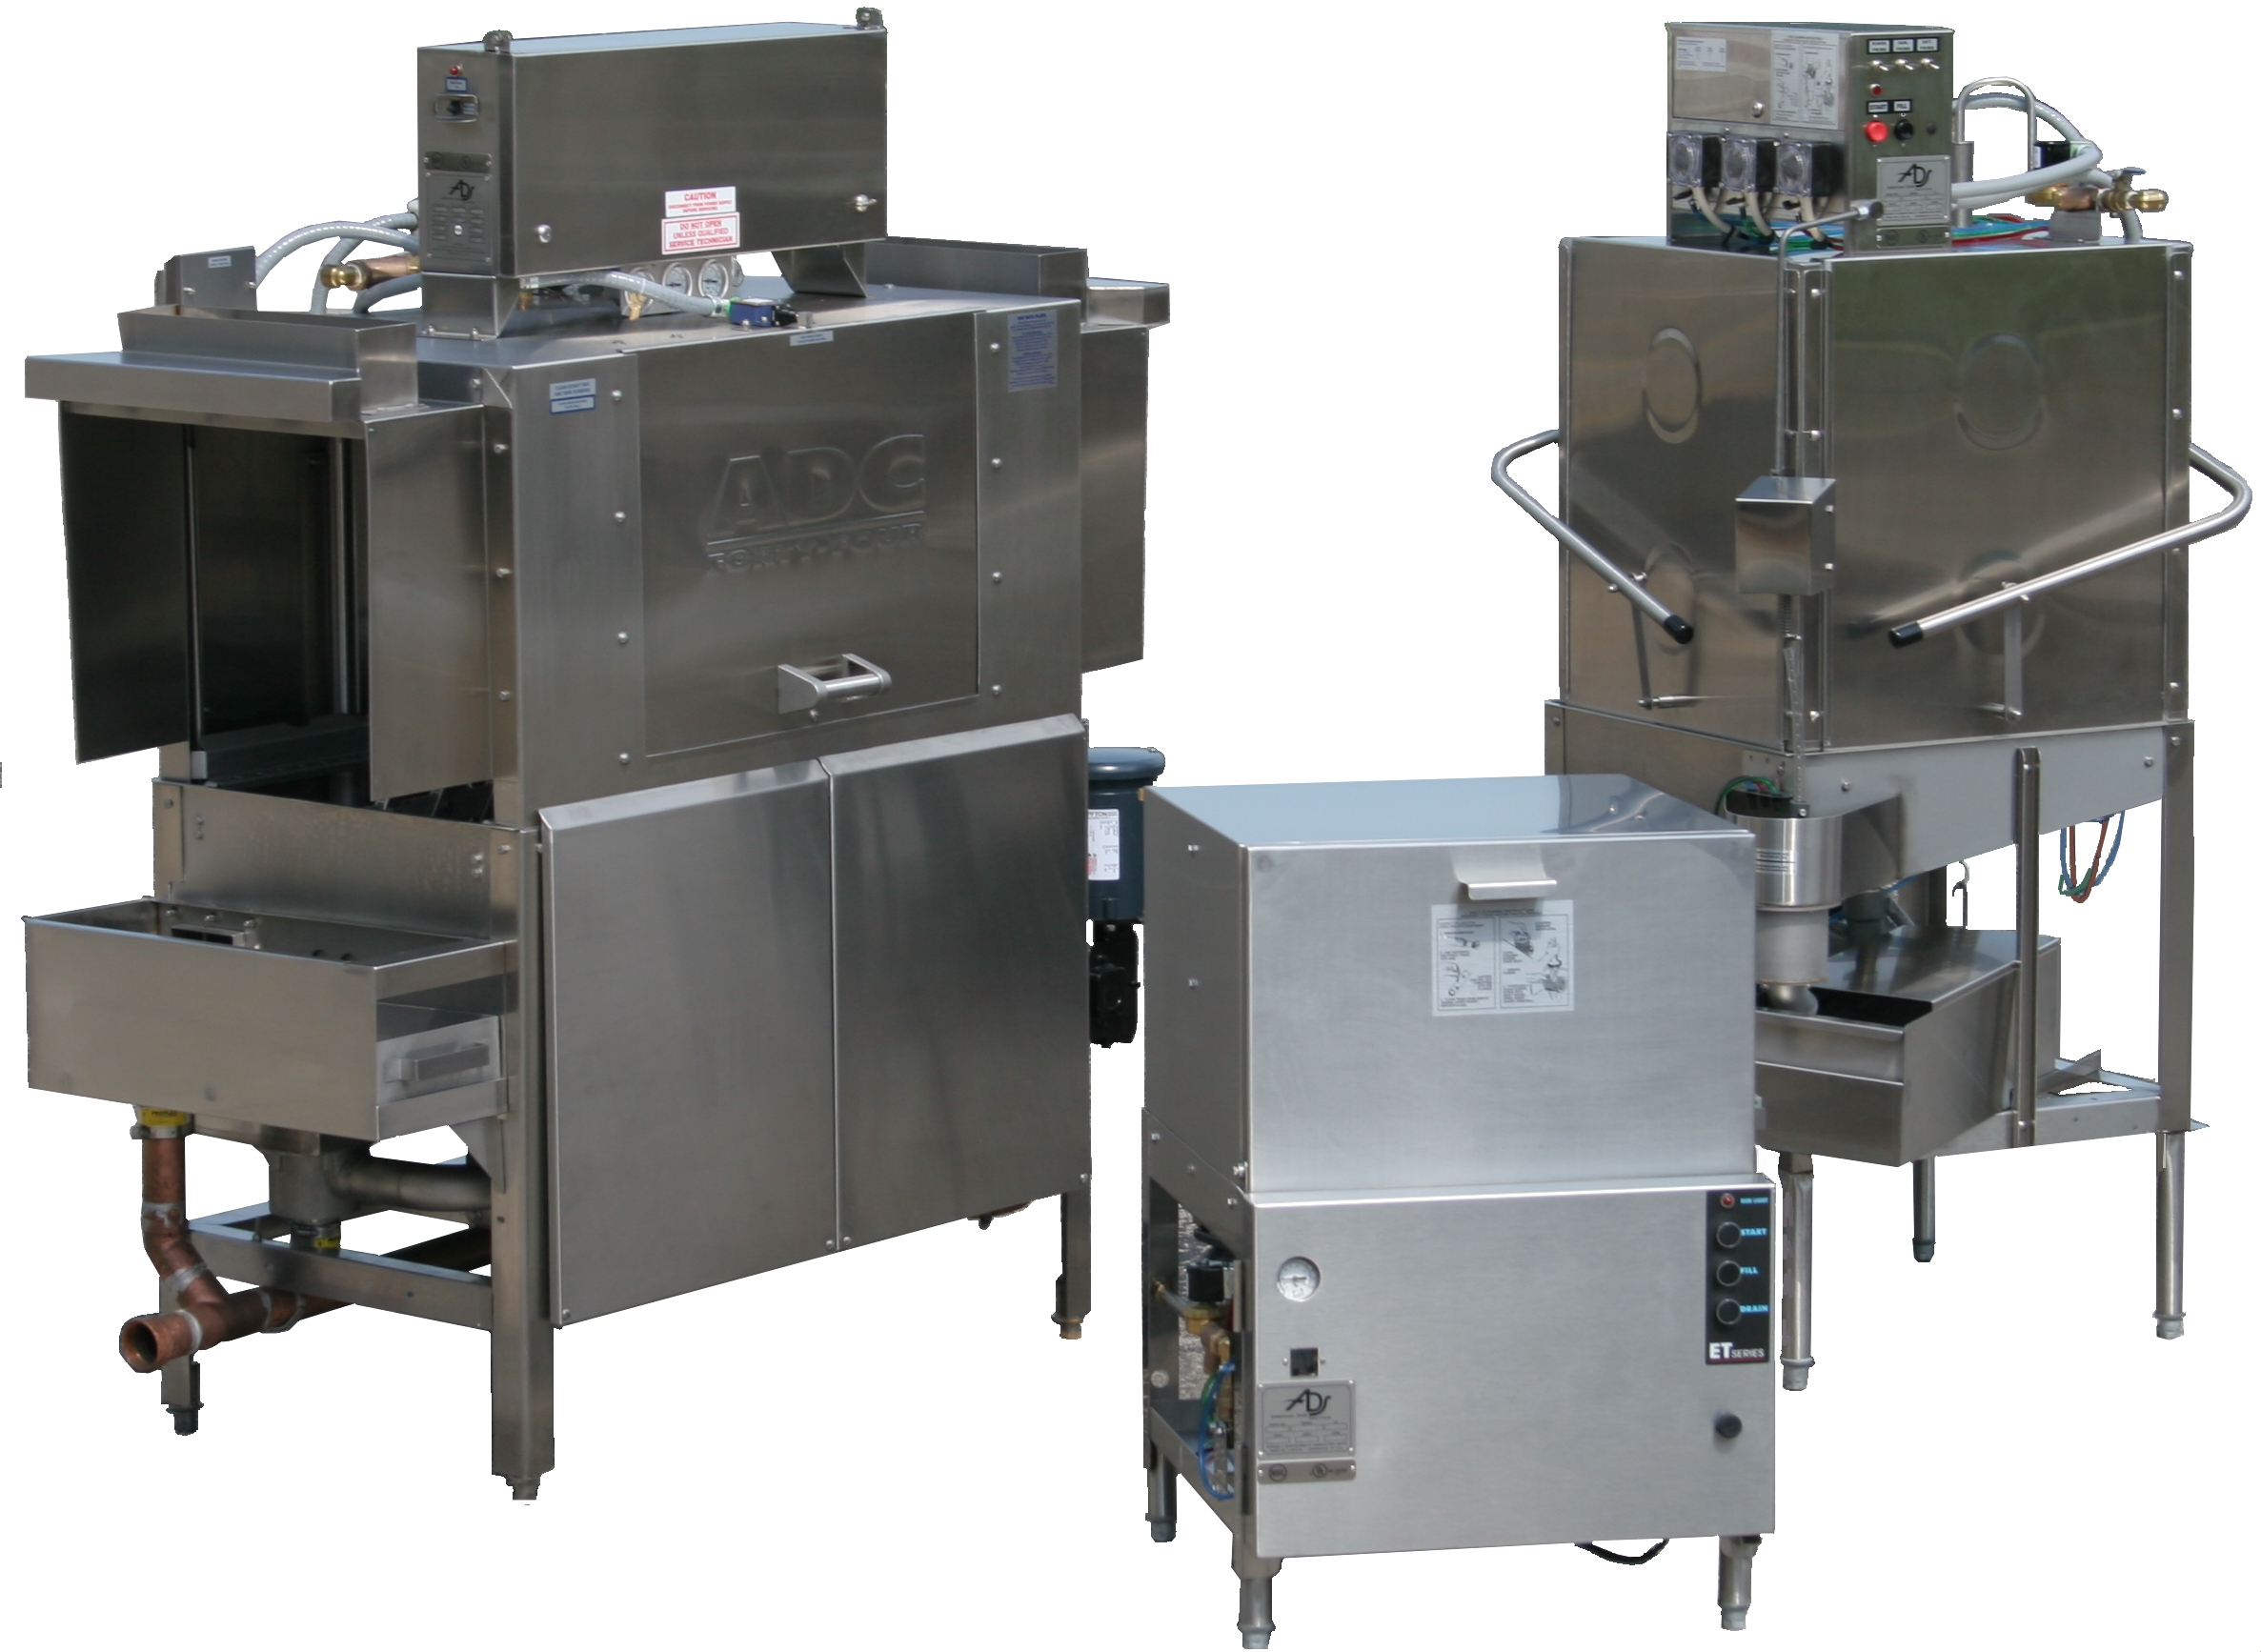 Commercial Kitchen Supplies Brooklyn, Stainless Dishwasher Machines NY